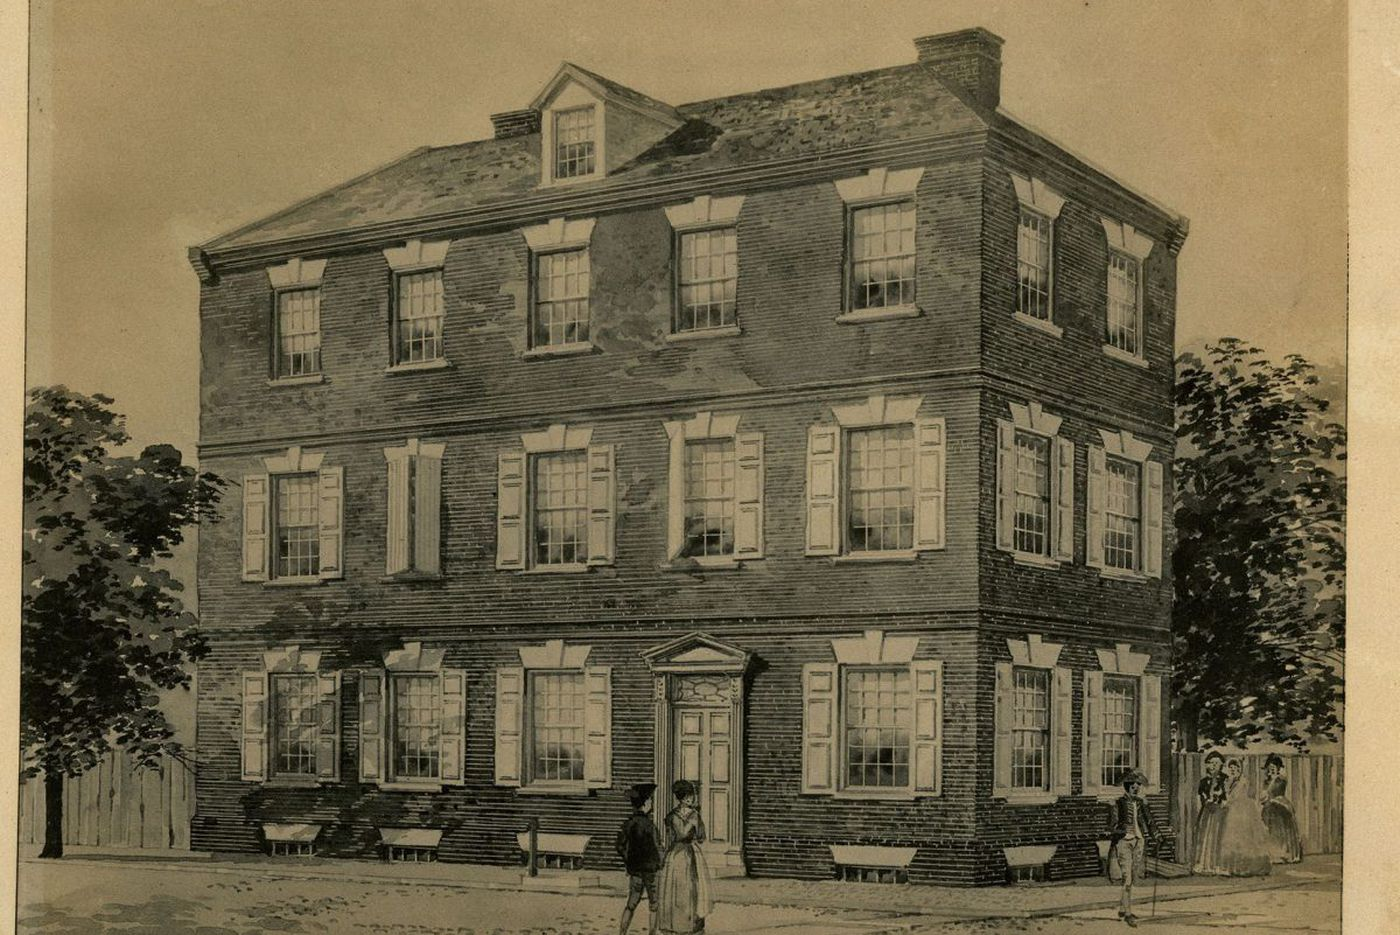 The Philly home where the Declaration of Independence was born